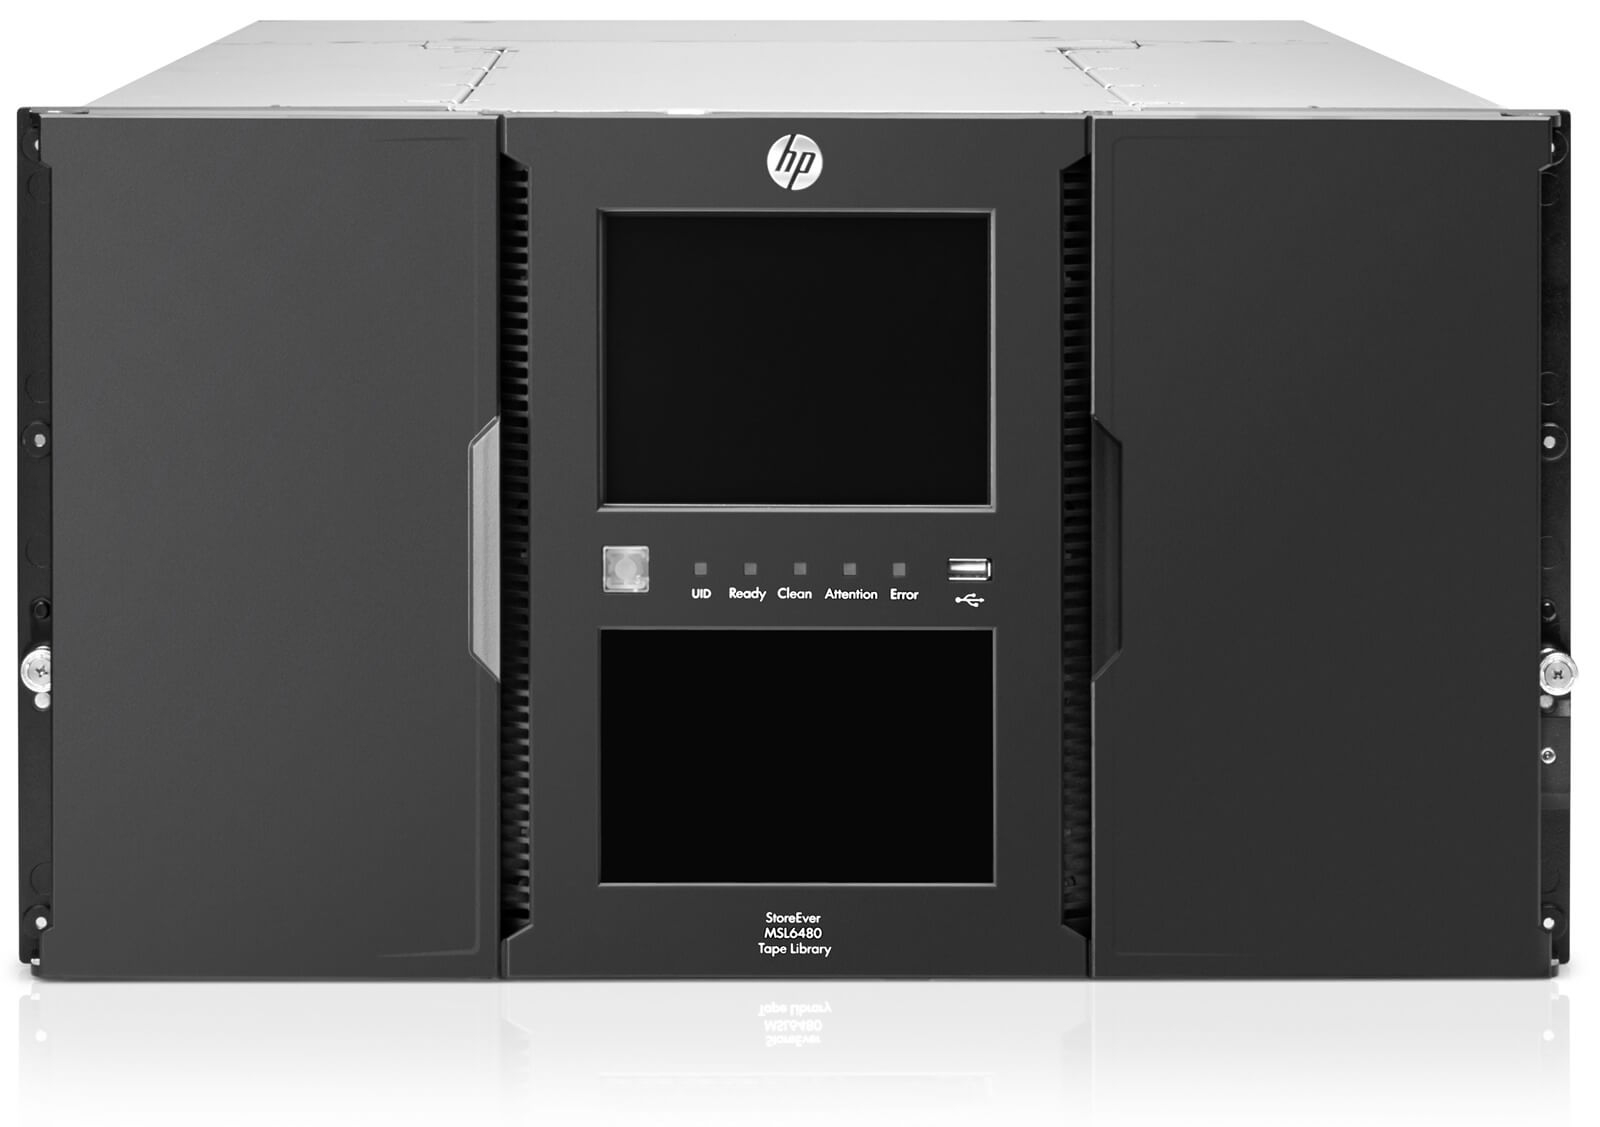 Drive LTO HP StoreEver MSL6480 Tape Library